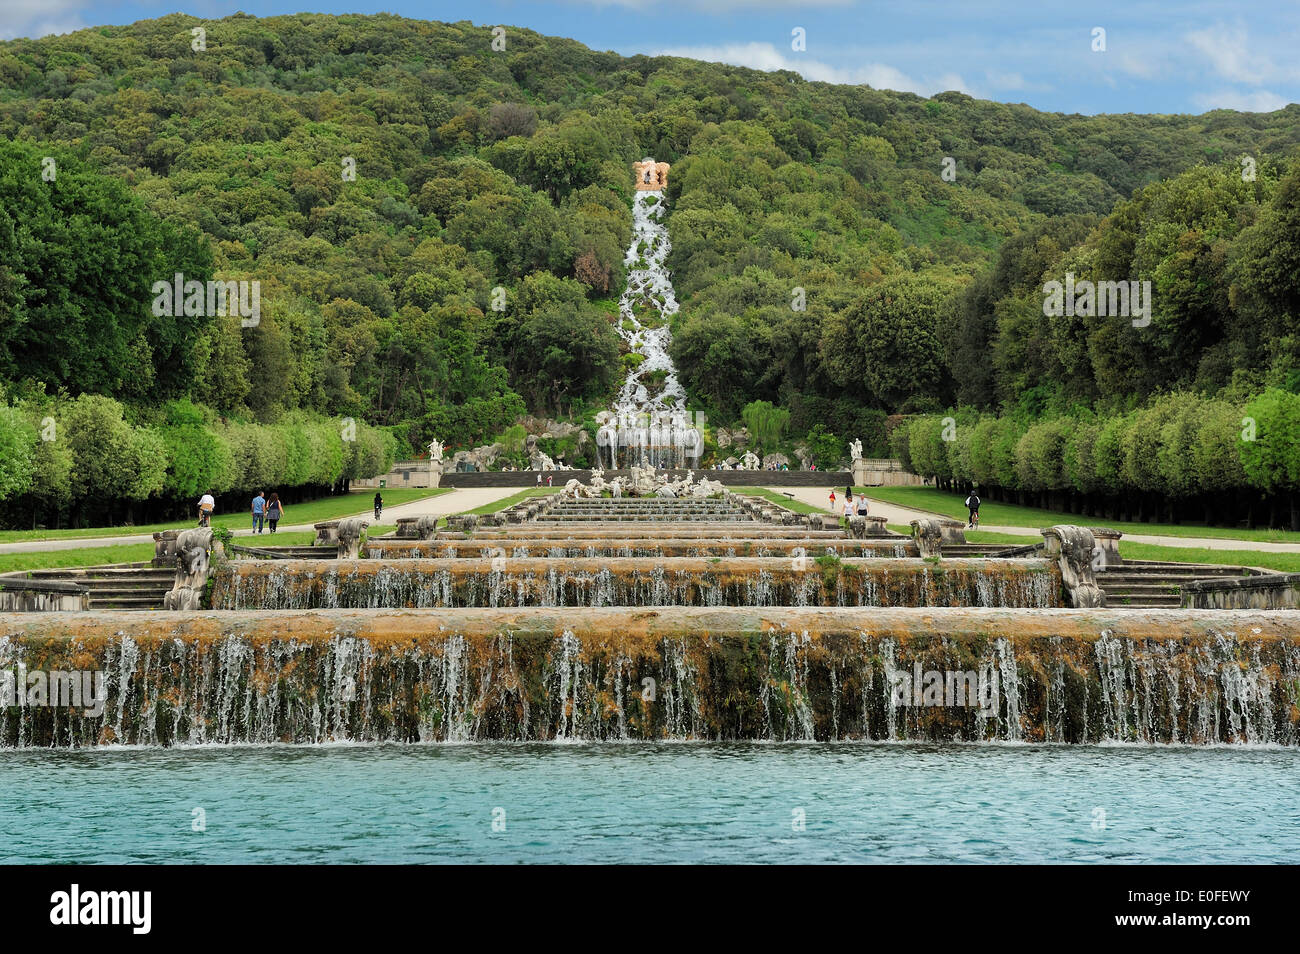 garden of the royal residence of Caserta, Italy Stock Photo